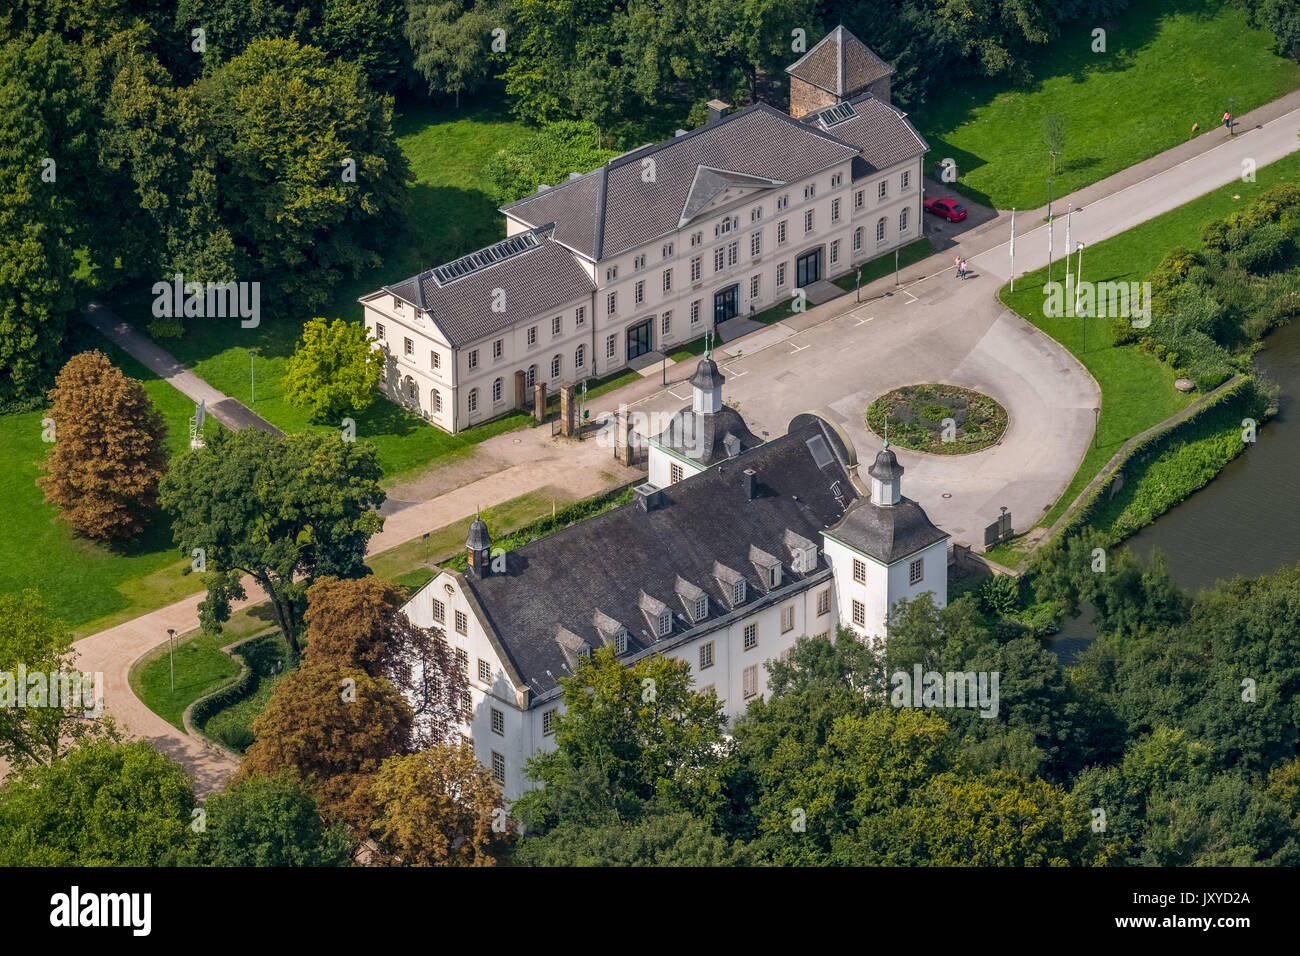 Schloss Borbeck, baroque moated castle, main house and an elongated farm buildings, curly gable, castle park is designed as an English landscape garde - Stock Image